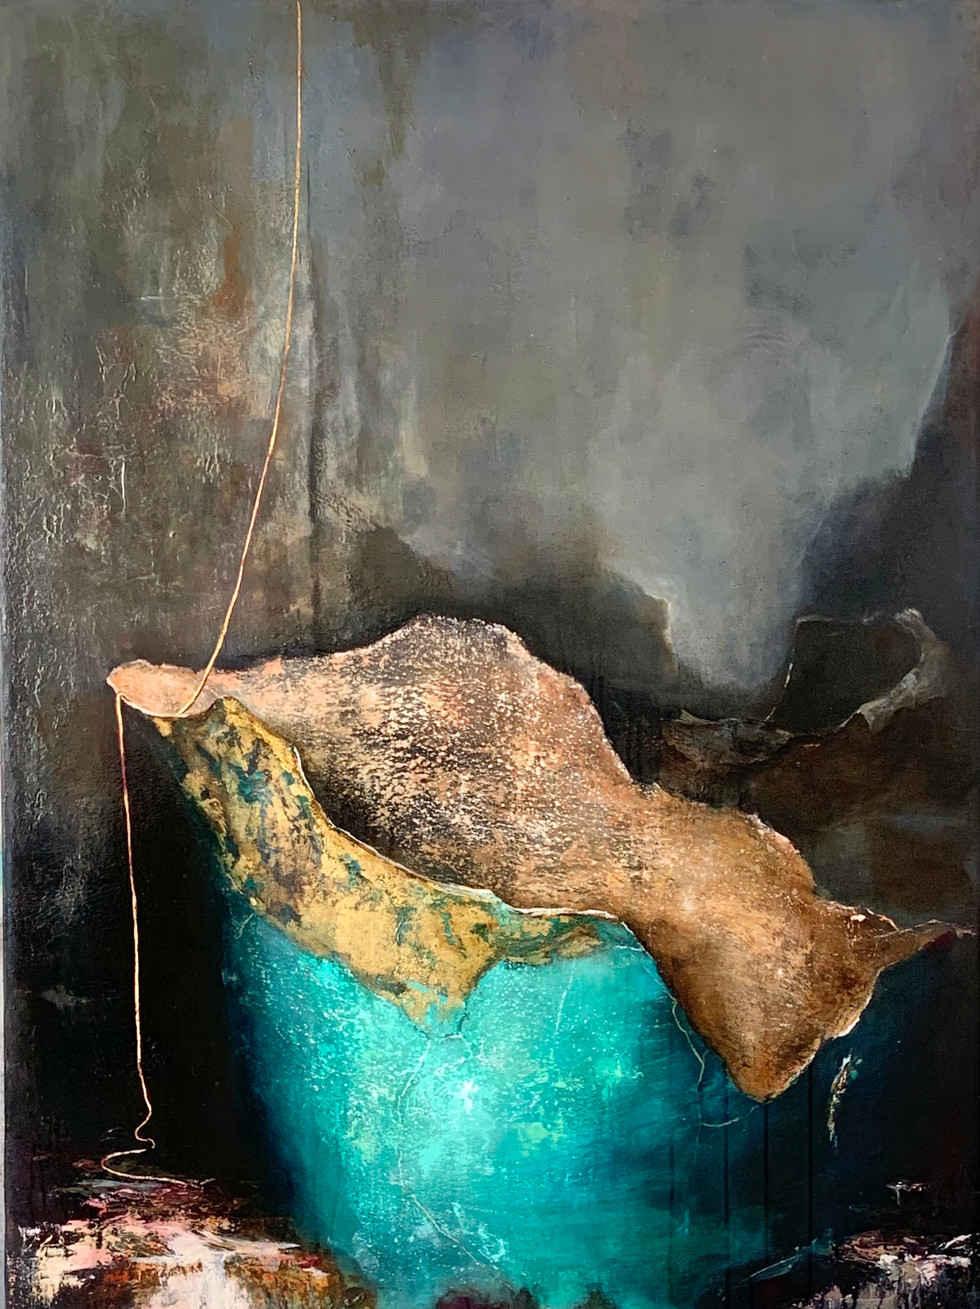 Remnants in Turquoises